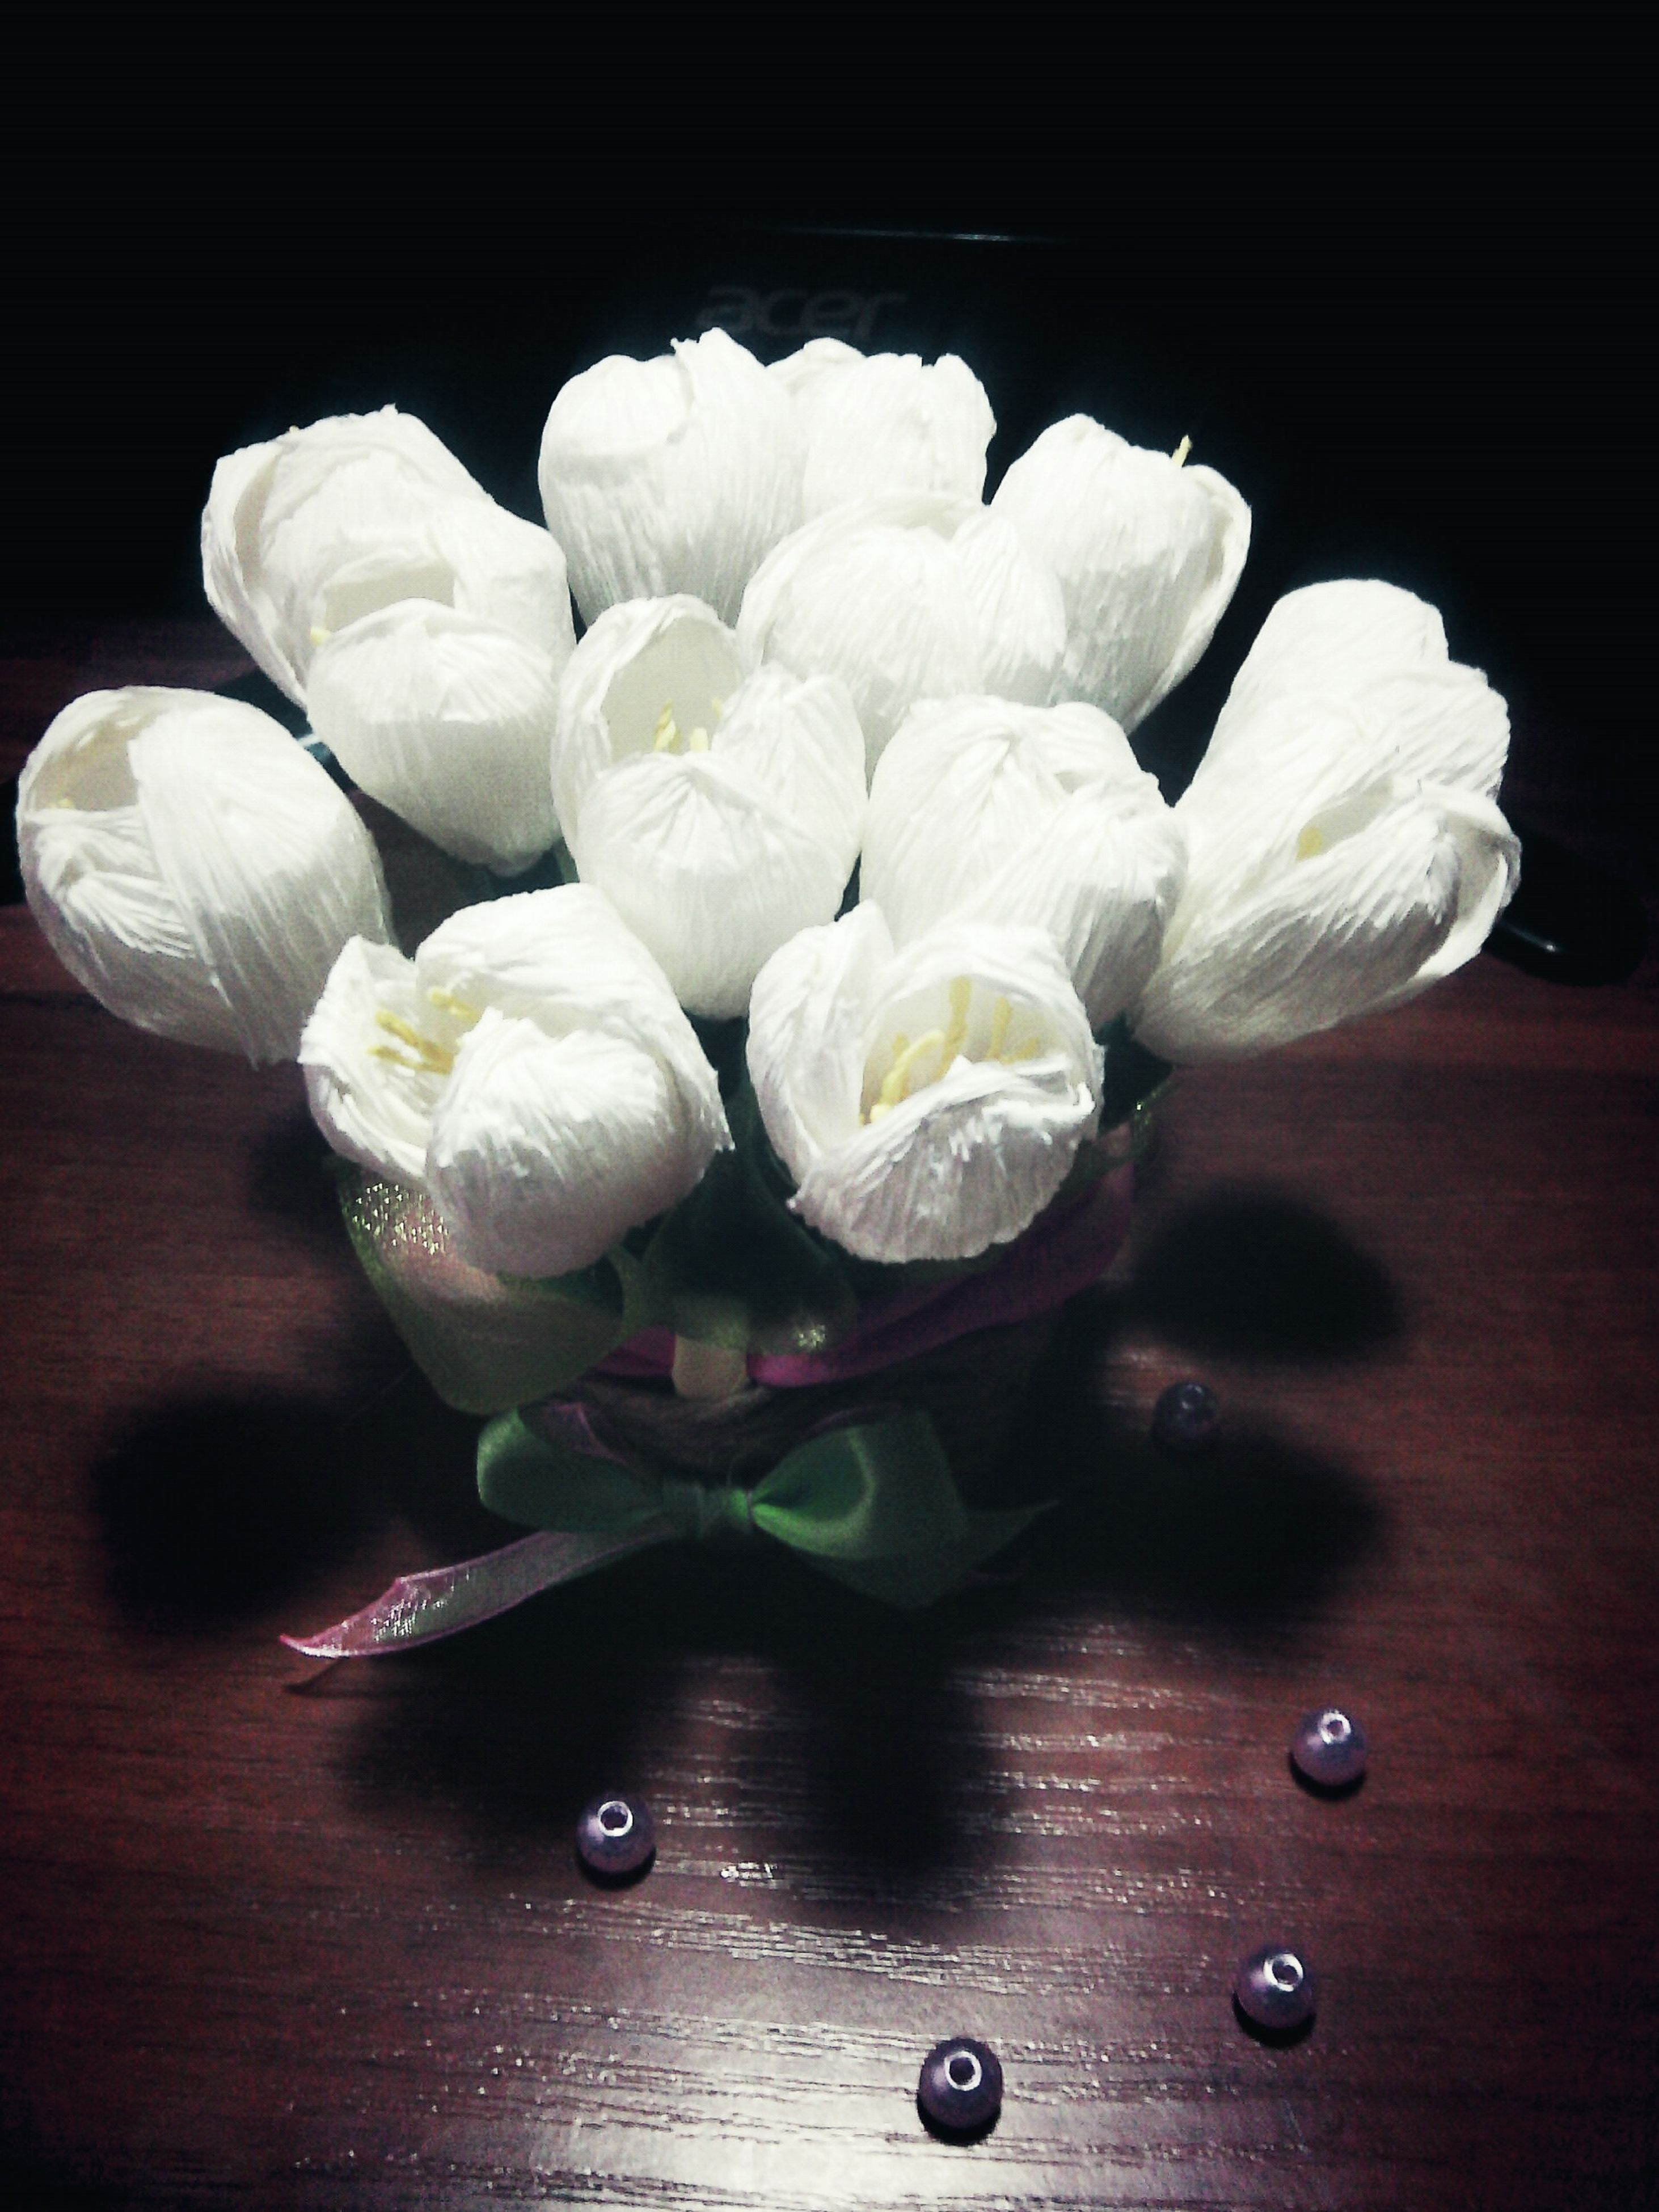 indoors, flower, freshness, table, fragility, close-up, still life, white color, black background, petal, high angle view, flower head, studio shot, wood - material, vase, no people, nature, directly above, beauty in nature, white